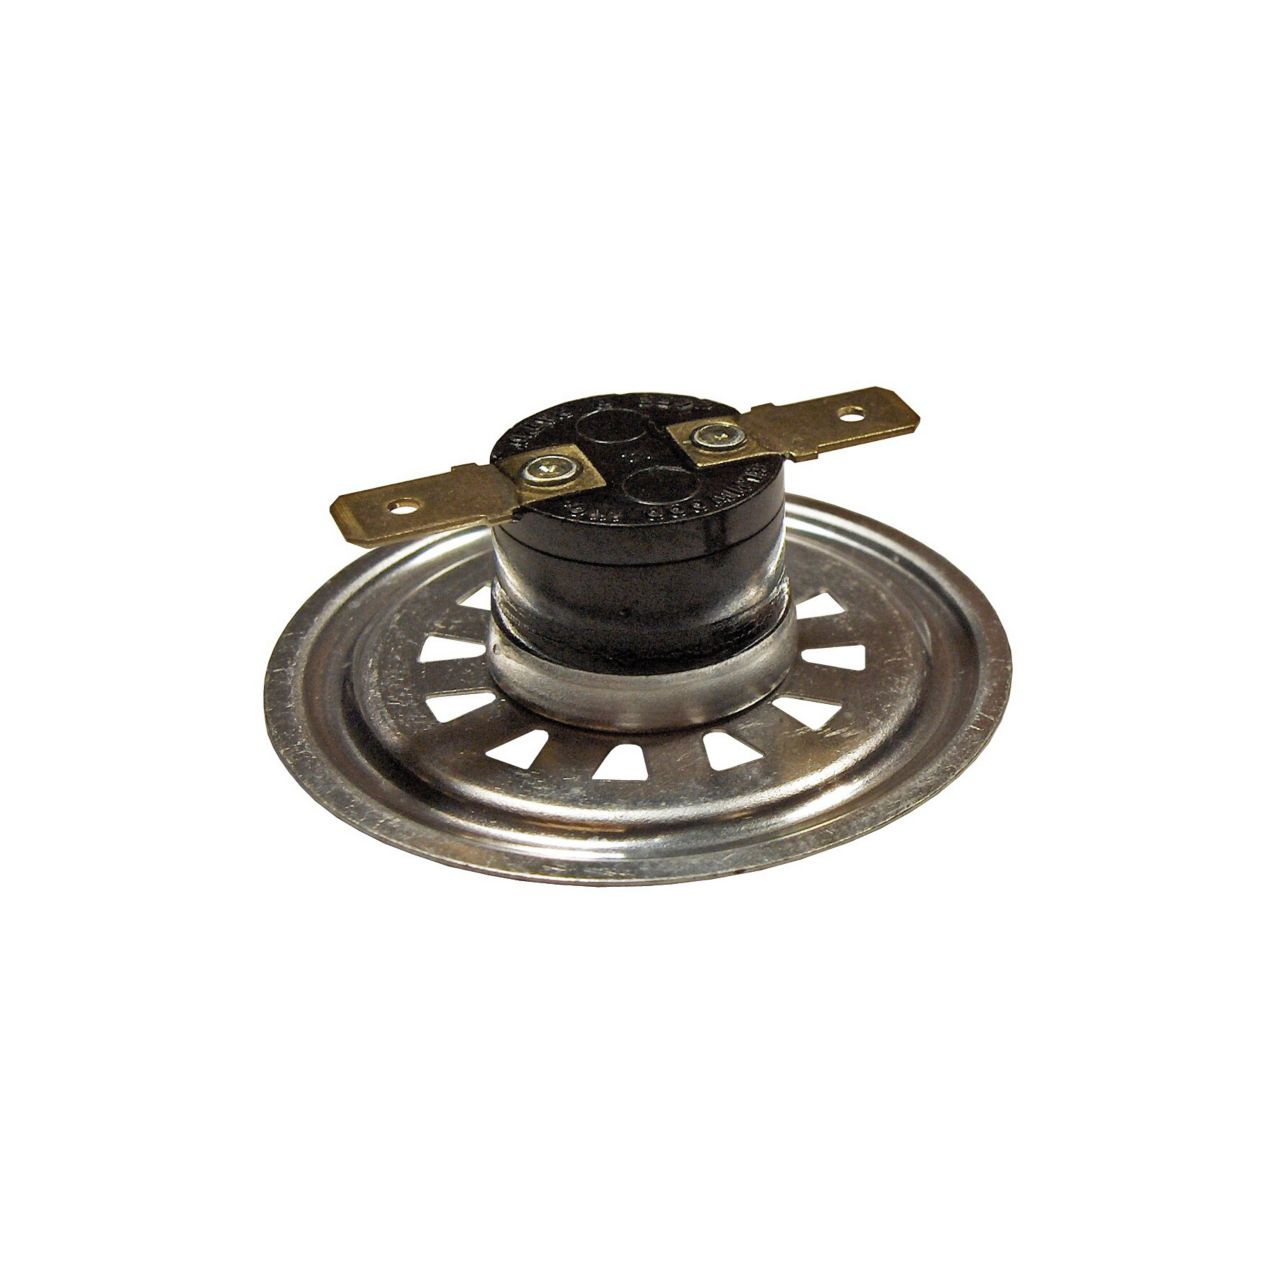 sps-siot-thermostats-2450a-2455ra.jpg